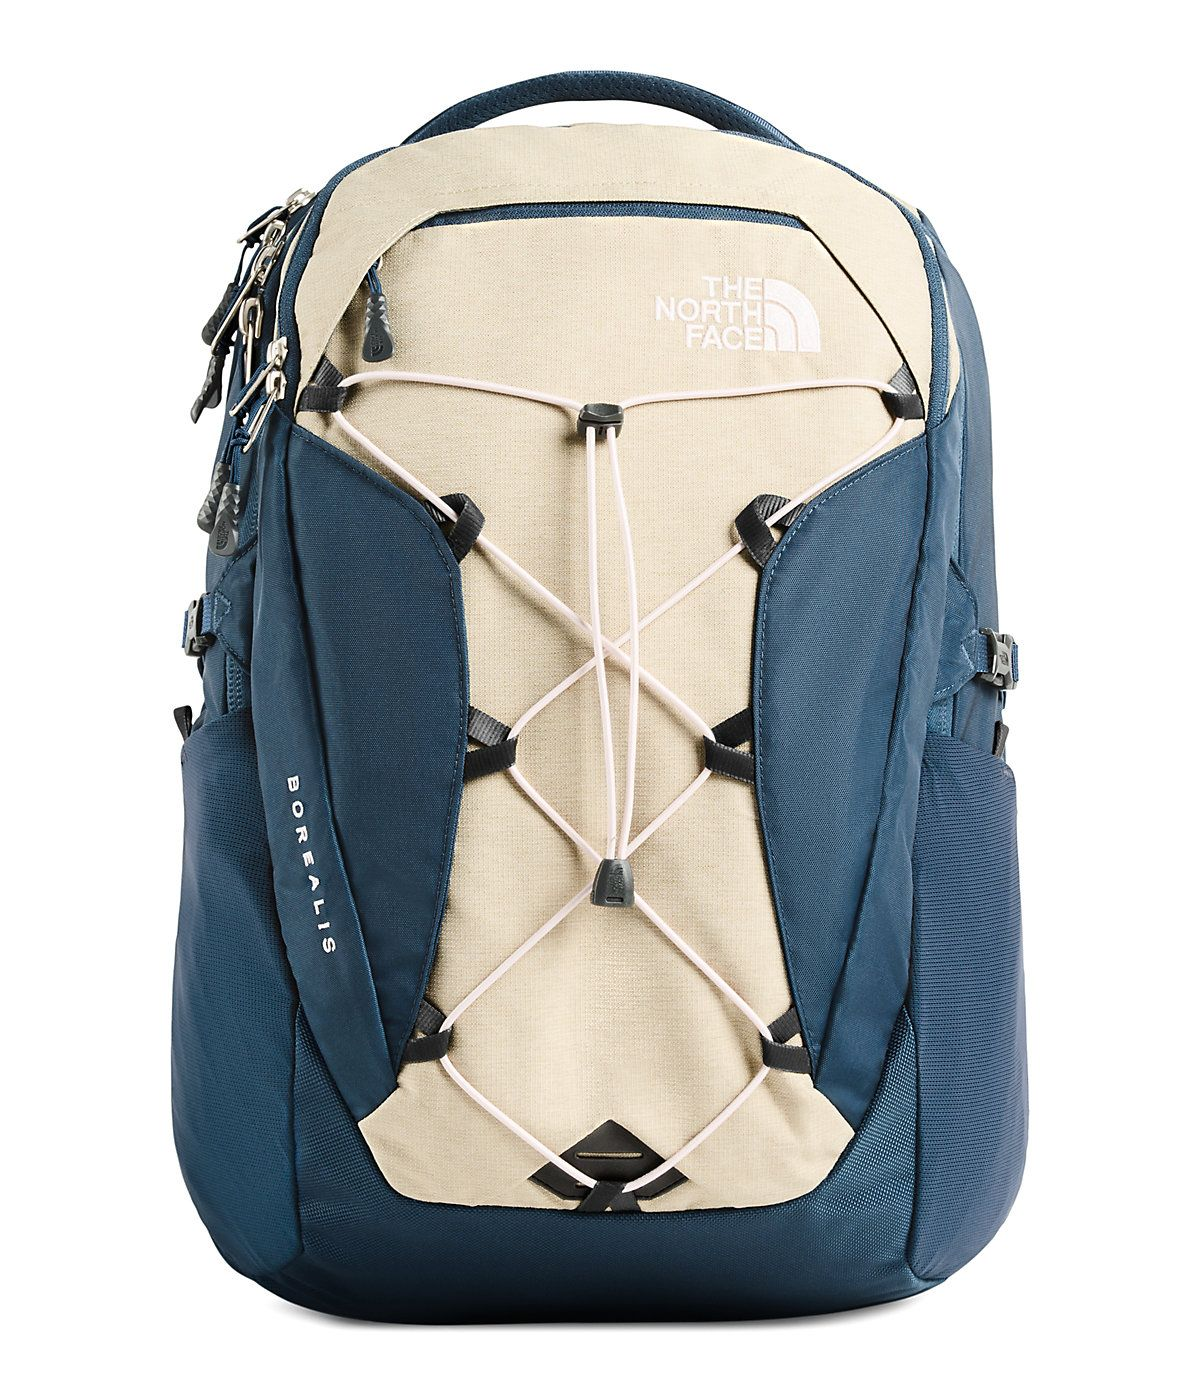 c8228c1c1 The North Face Women's Borealis Backpack (28 Liter) in 2019 ...